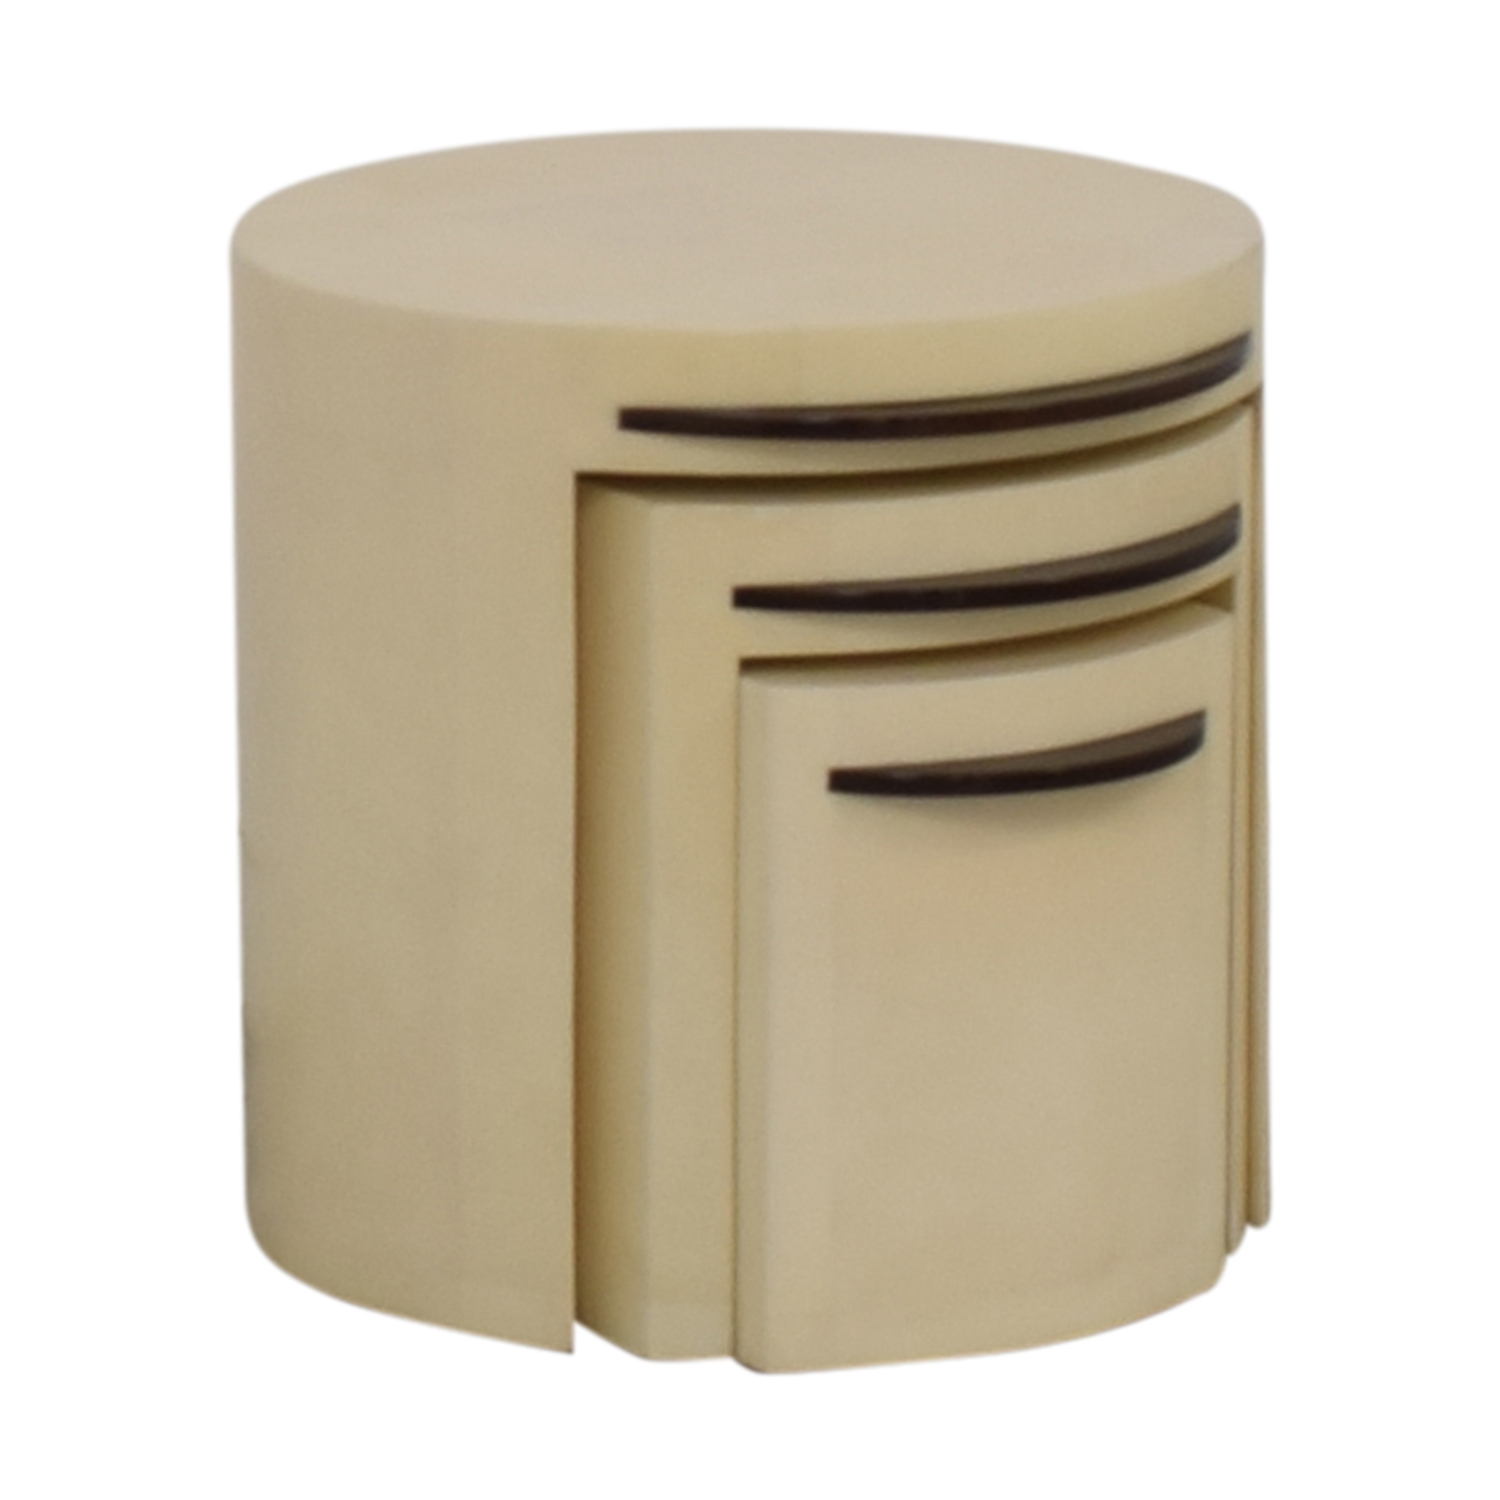 buy Lorin Marsh Lorin Marsh Lacquered Nesting Tables online